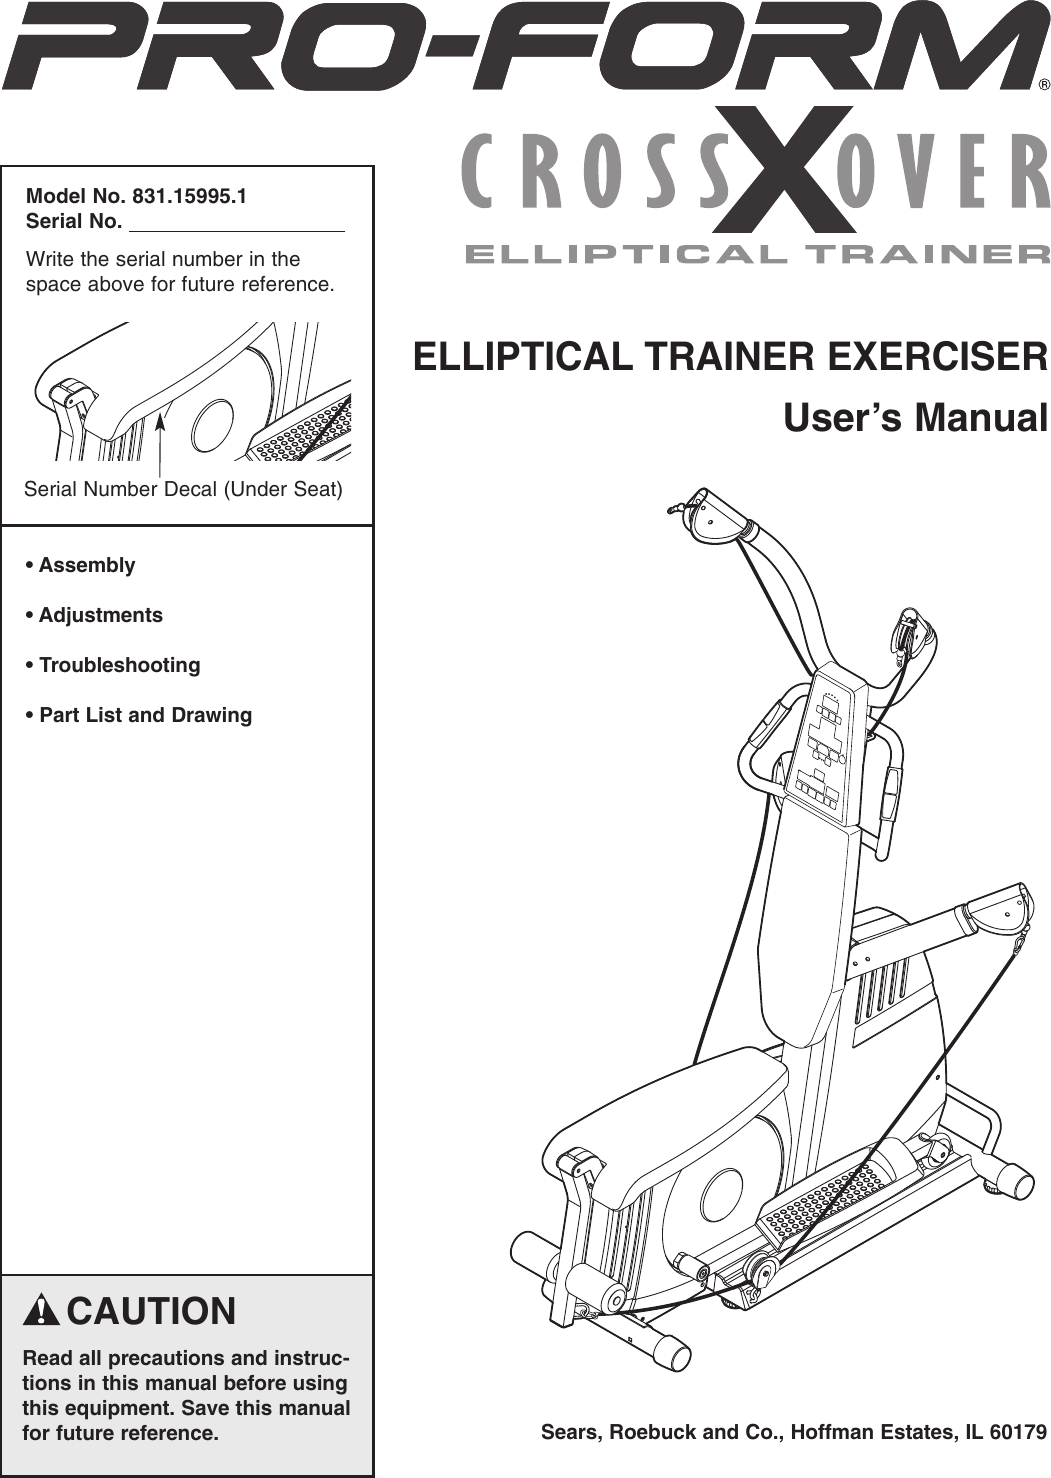 Proform 159951 Crossover Elliptical Trainer Users Manual